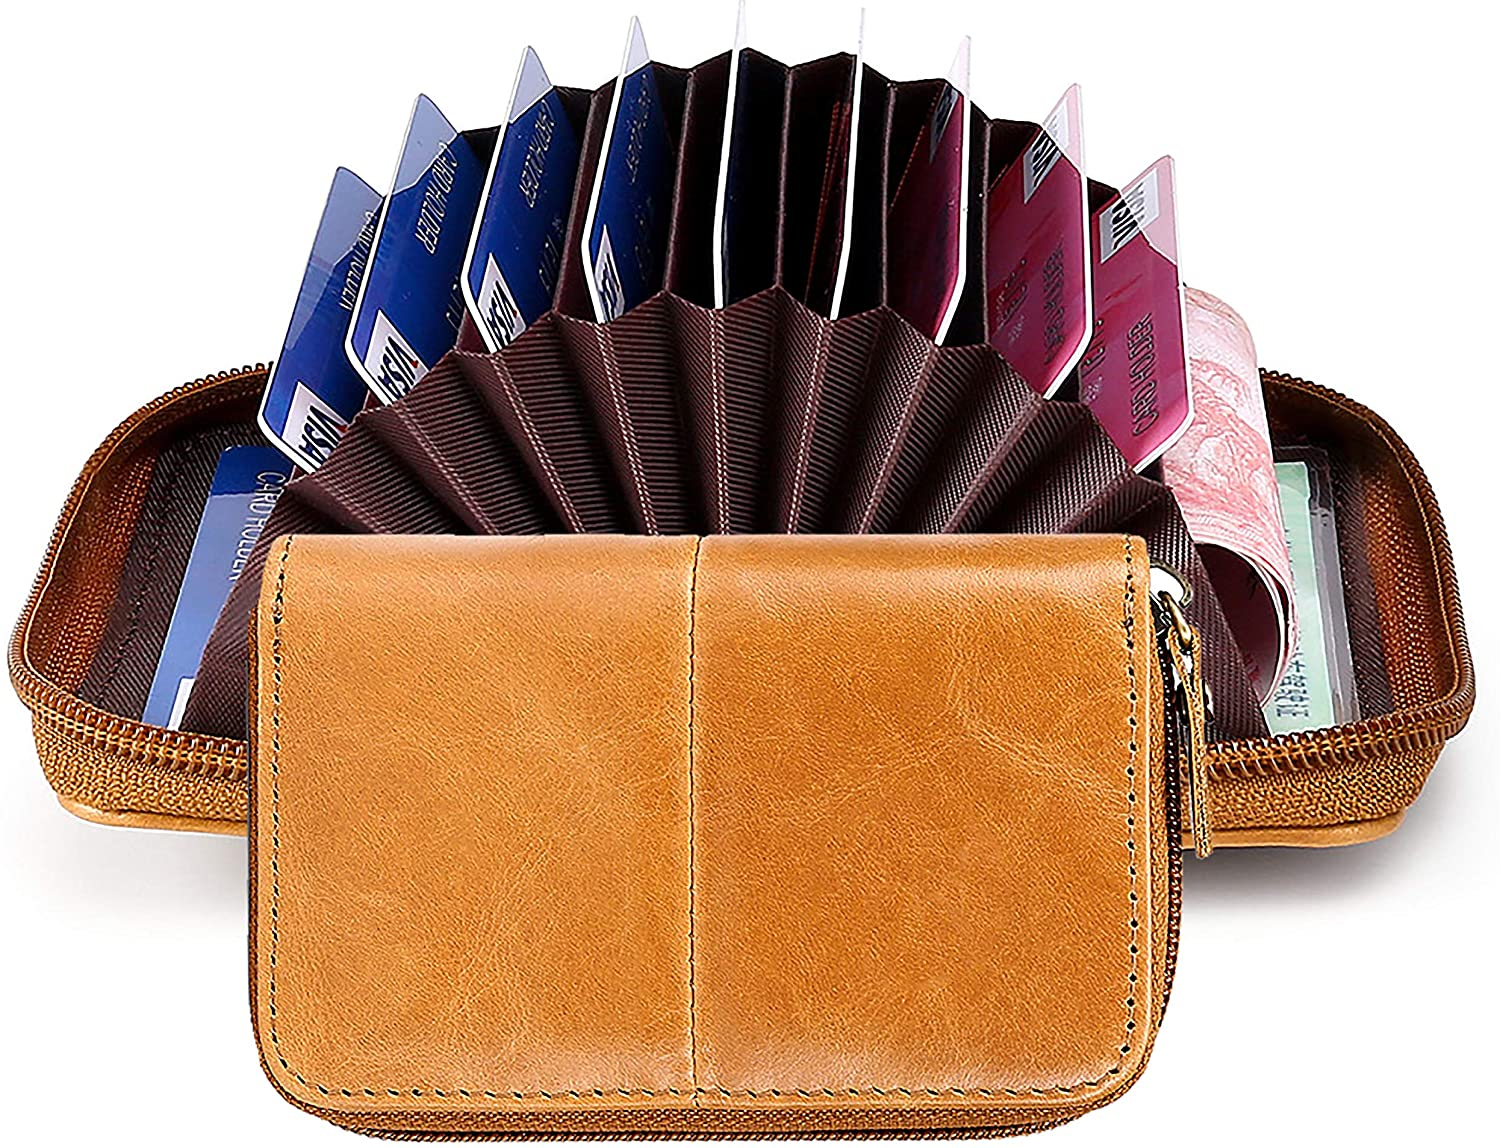 Card Holder,Leather Wallet with Zipper ID Window RFID Blocking,Credit Card Case Fashion